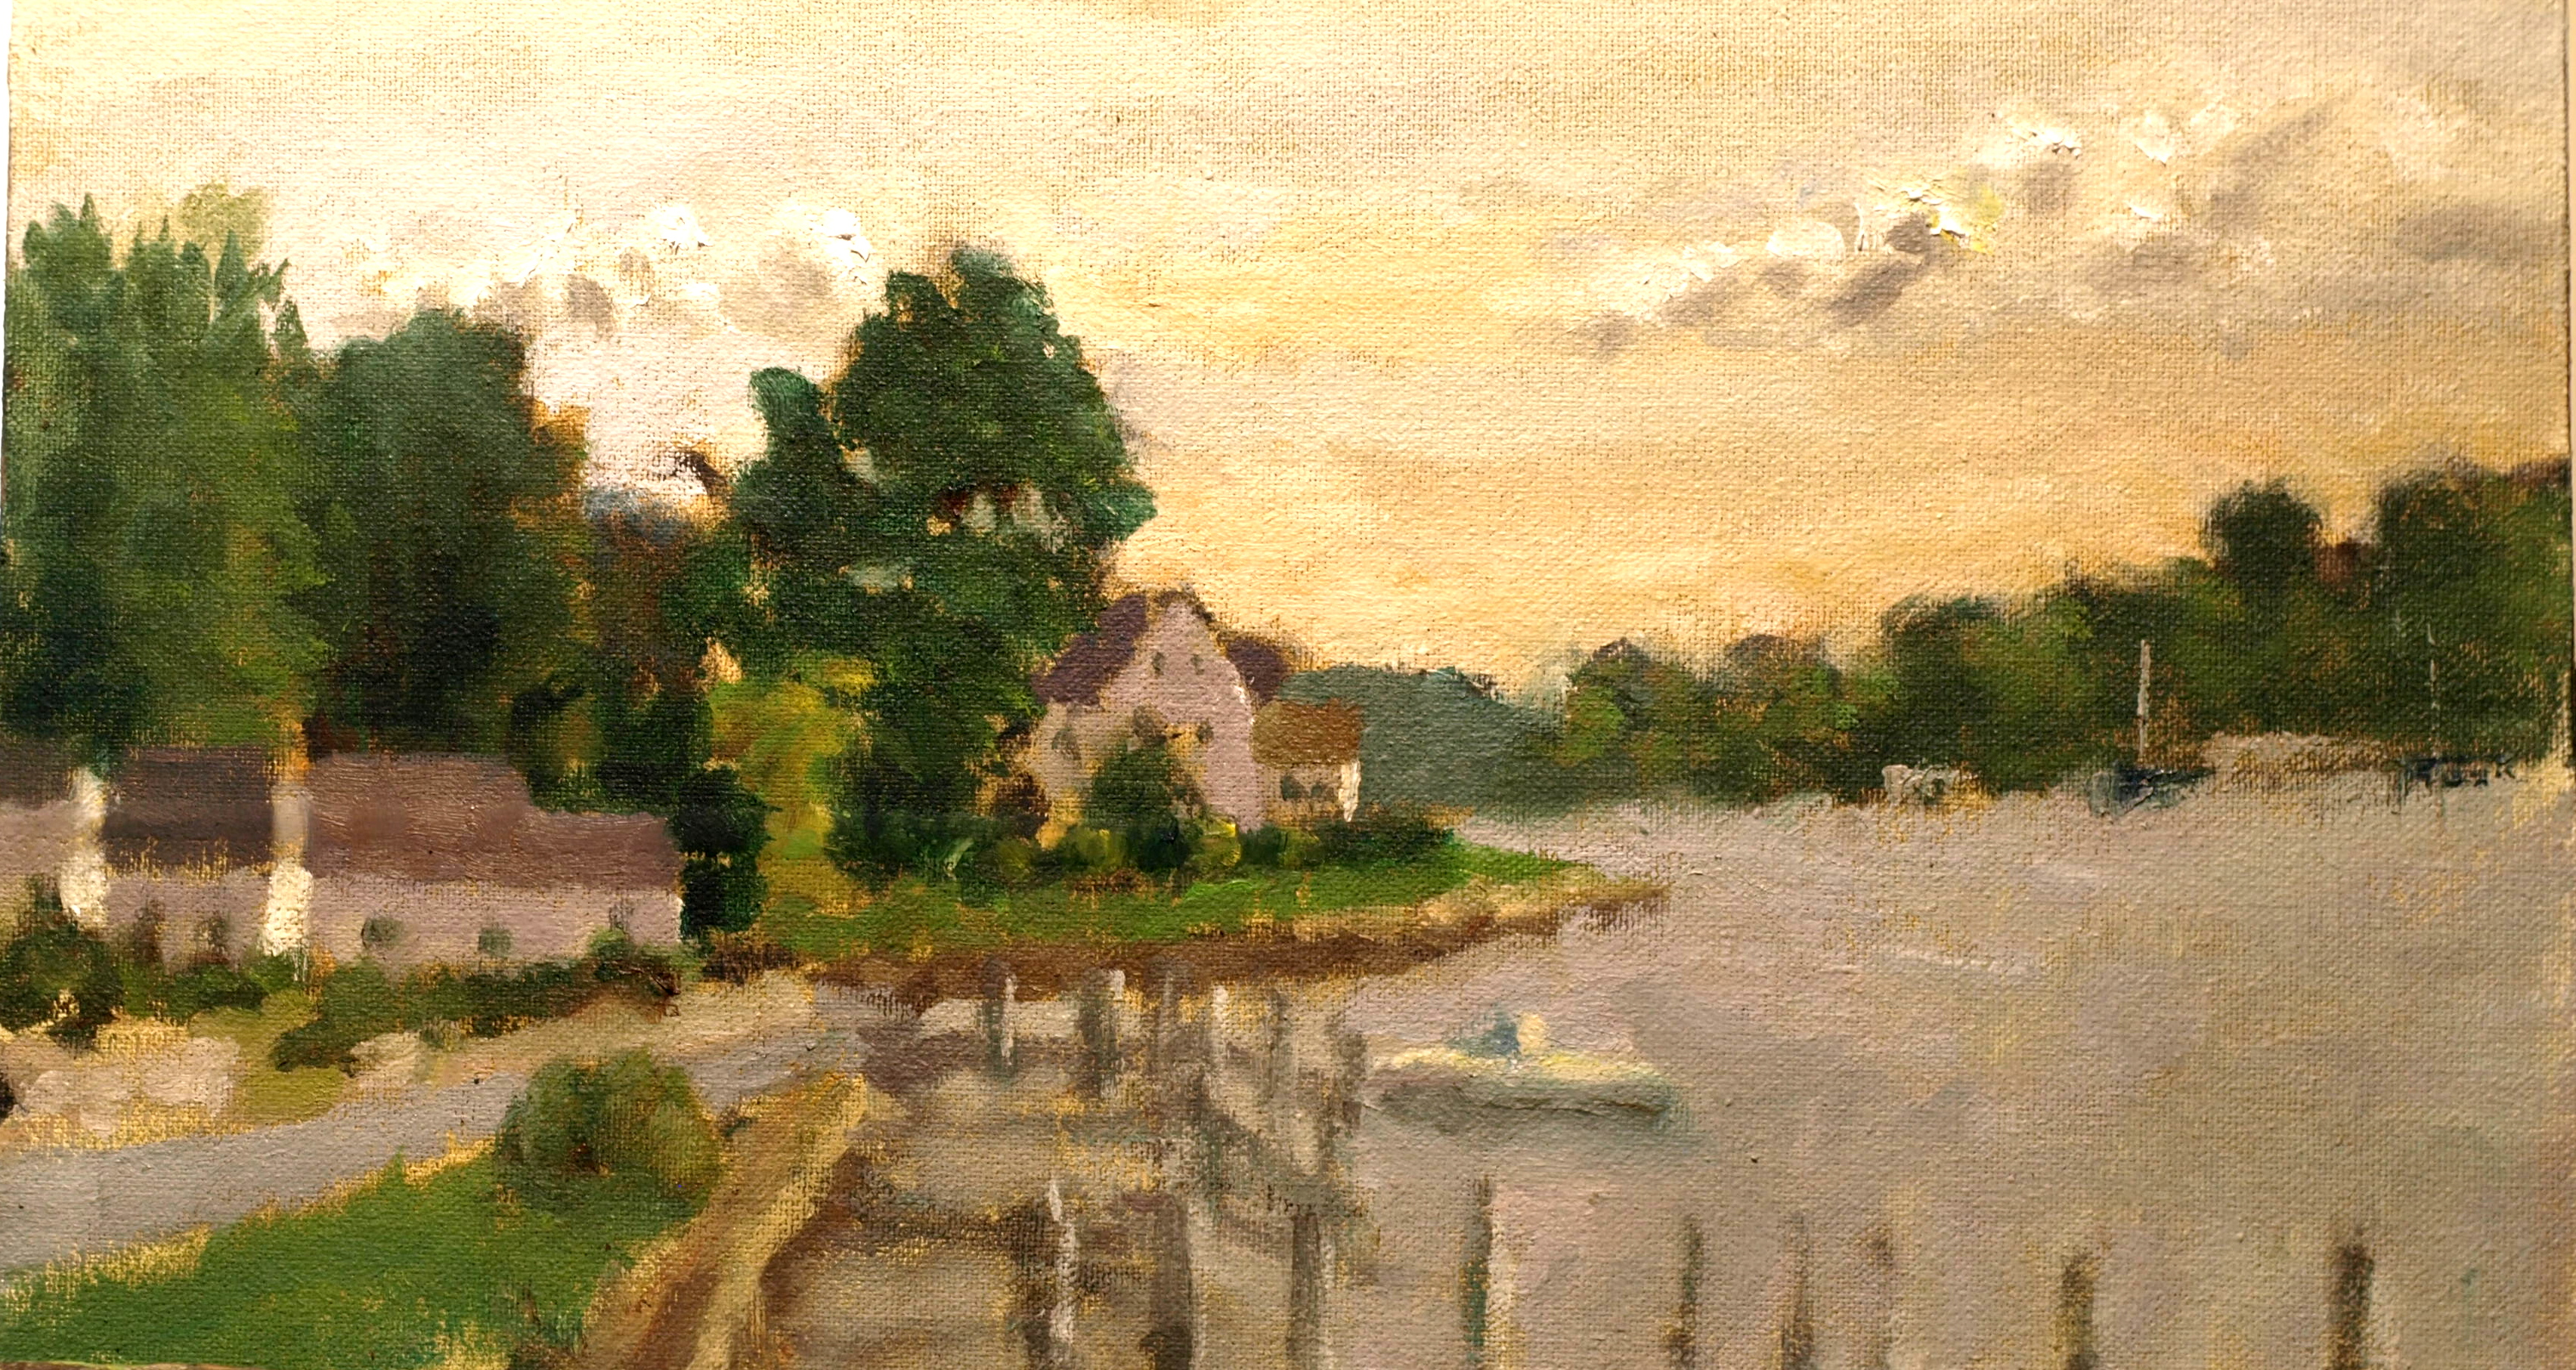 Afternoon Along the Mystic River, Oil on Canvas on Panel, 8 x 14 Inches, by Richard Stalter, $220